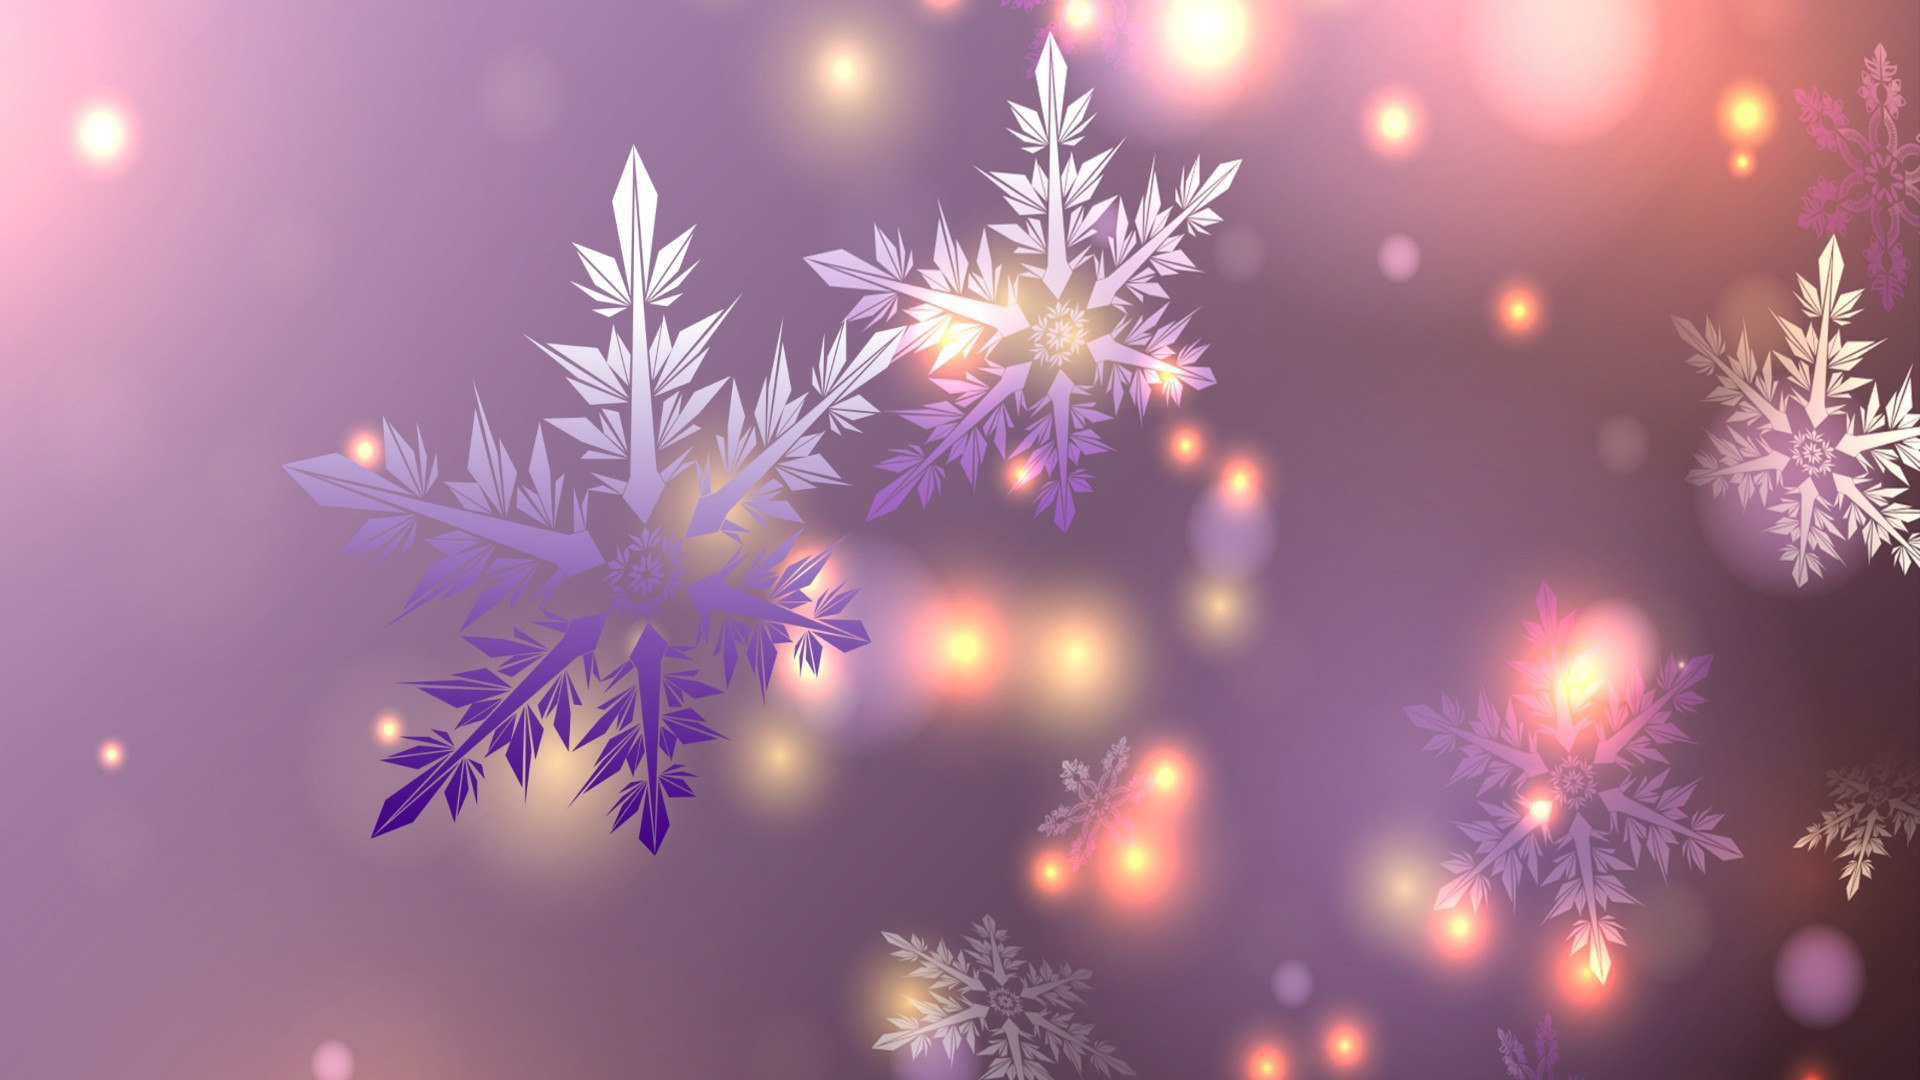 Magical Snow wallpaper